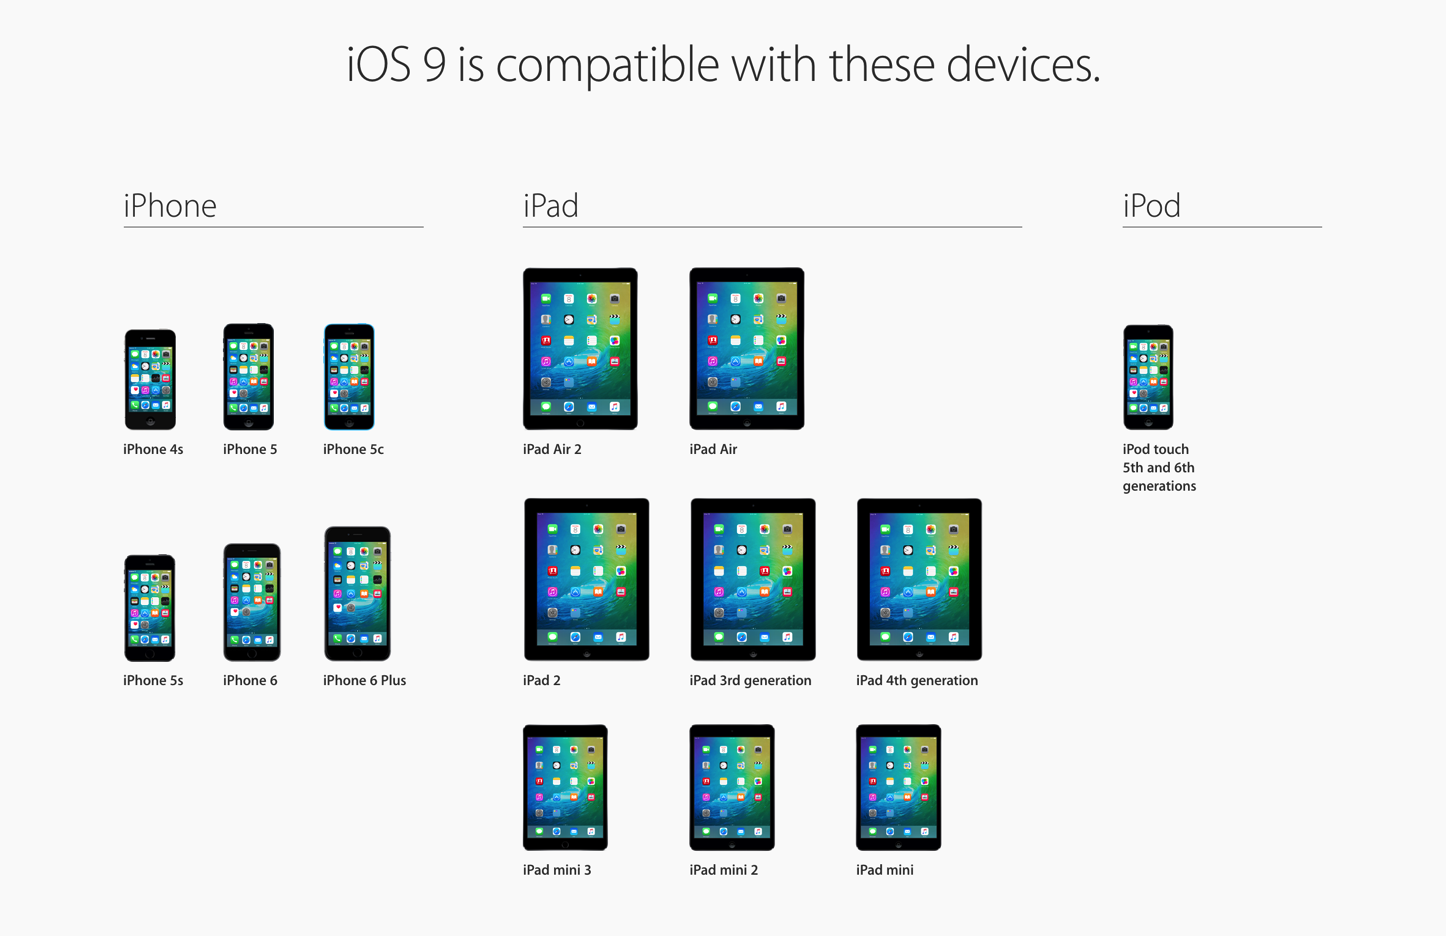 Ios9 compatible devices